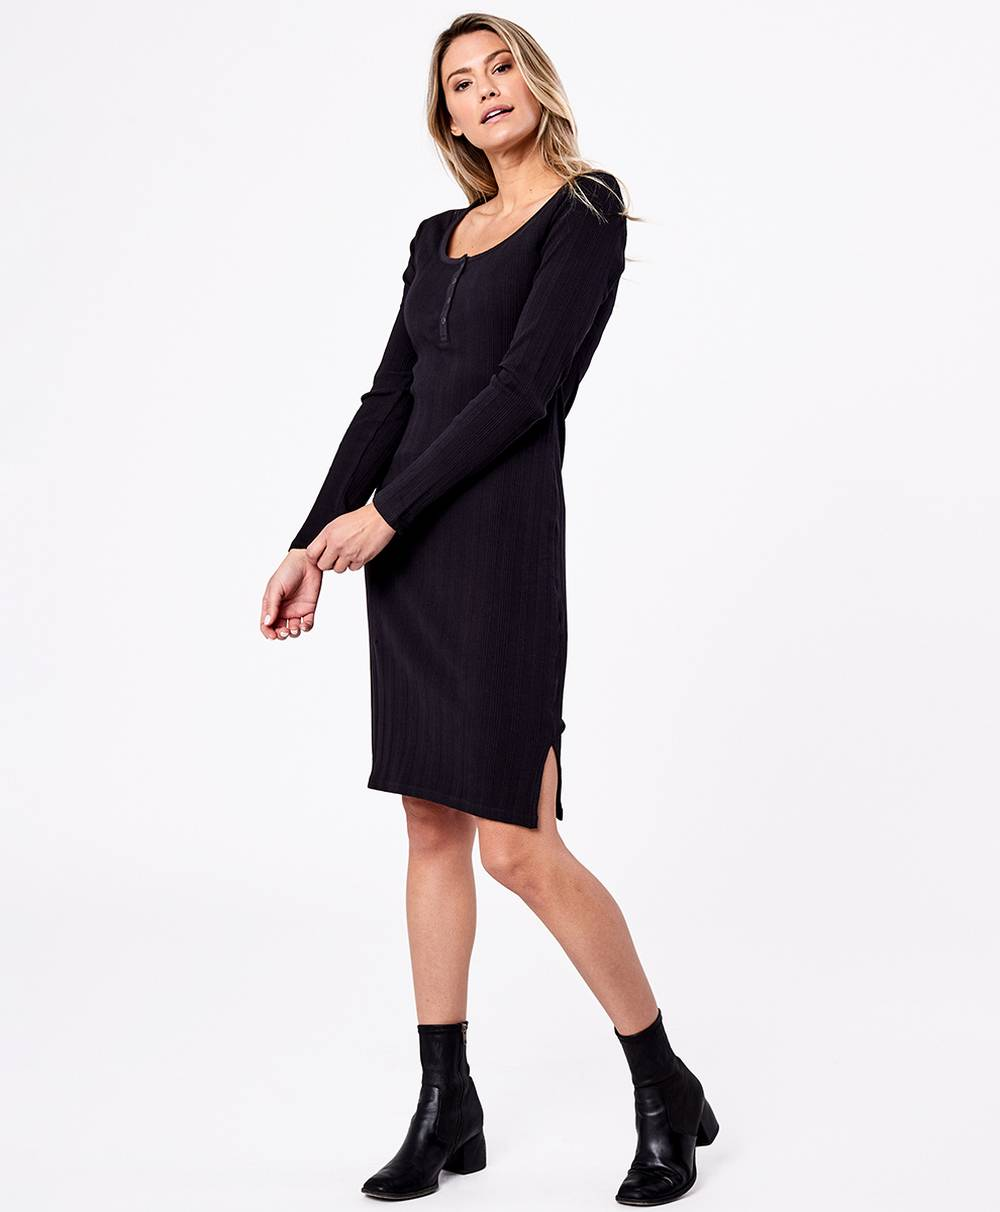 pact cheap ethical formal clothing